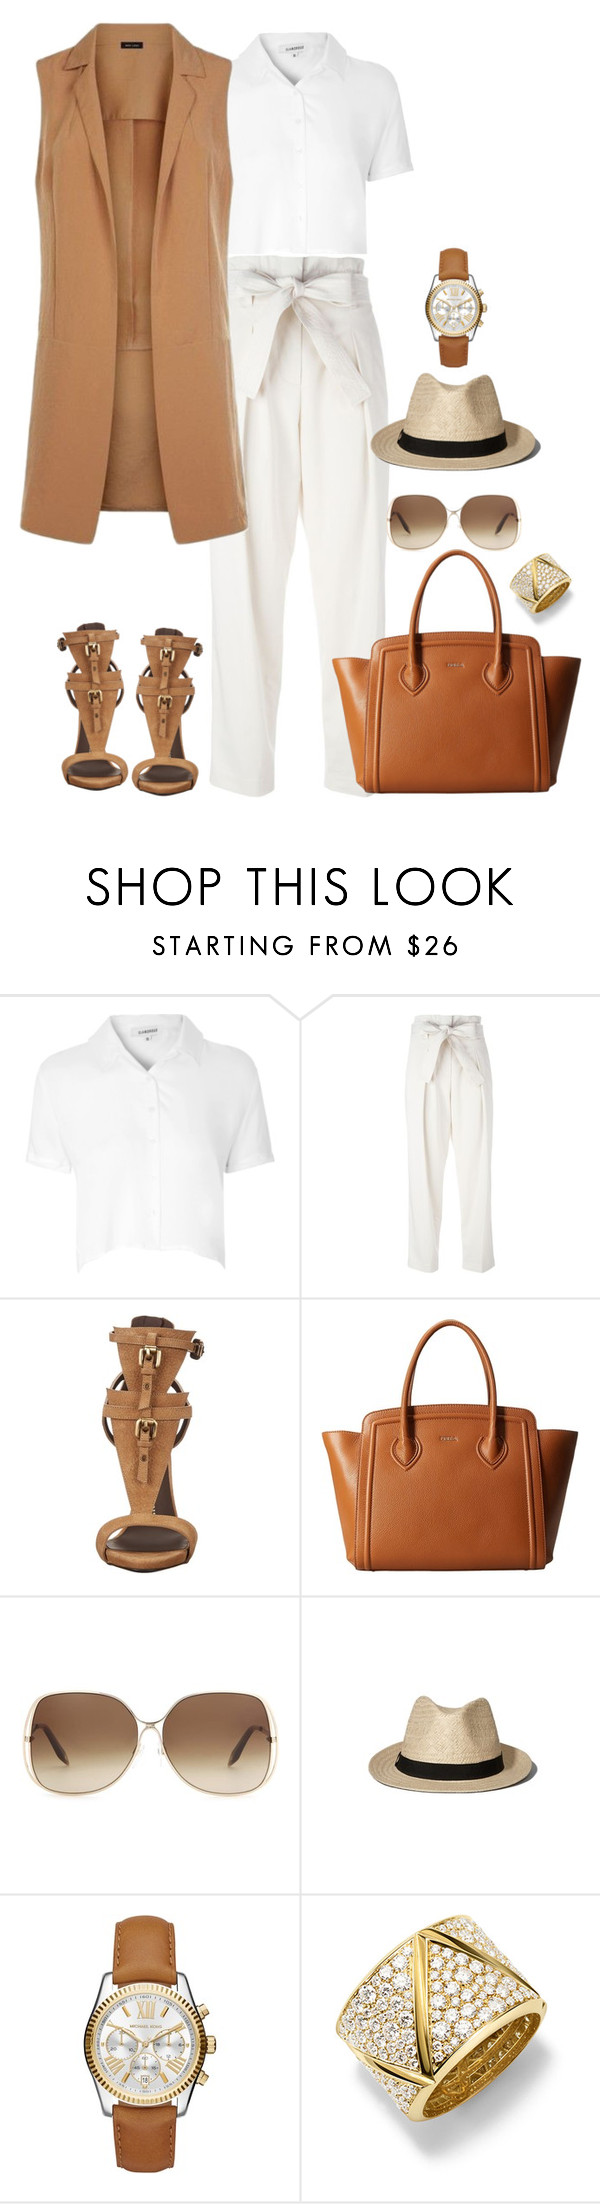 """Style#1015"" by mussedechocolate ❤ liked on Polyvore featuring Glamorous, 3.1 Phillip Lim, Giuseppe Zanotti, Furla, Victoria Beckham, Abercrombie & Fitch, Michael Kors, Marina B, women's clothing and women"